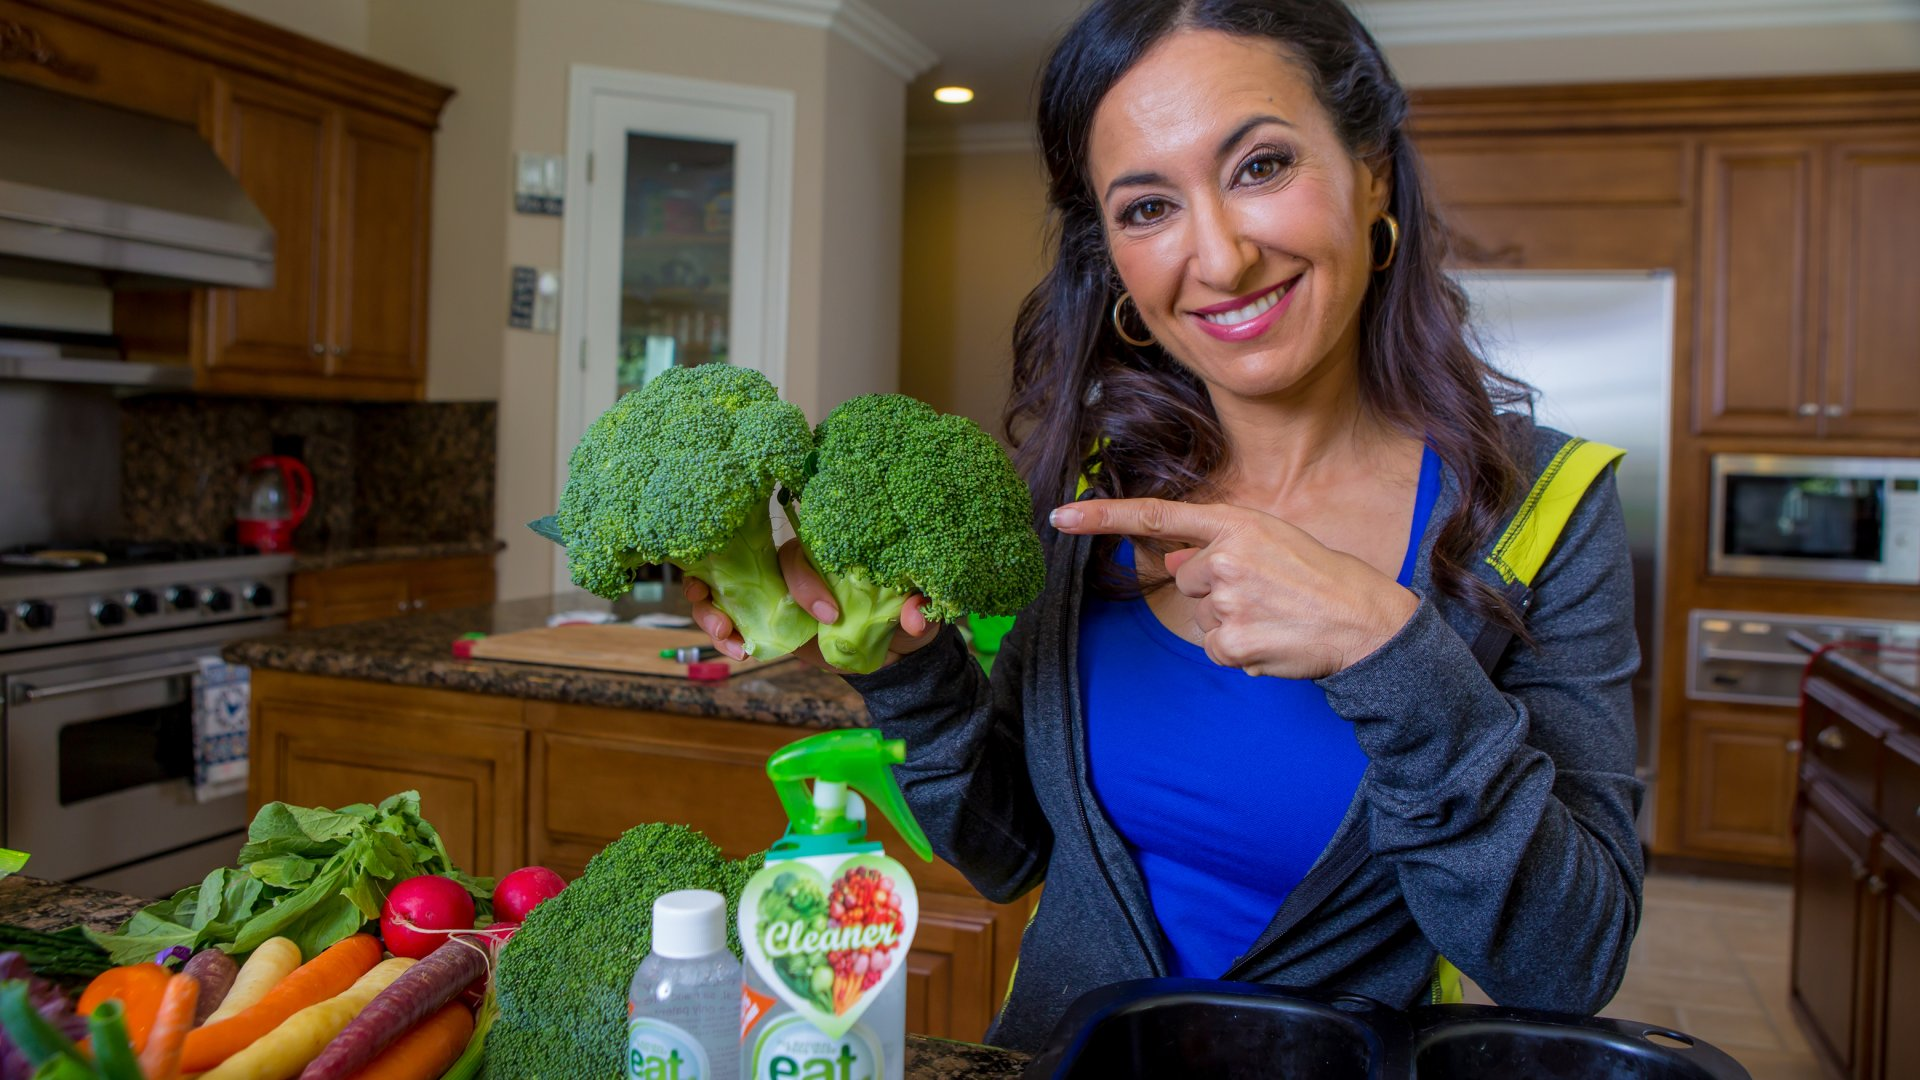 Mareya Ibrahim, CEO and co-founder of Eat Cleaner.